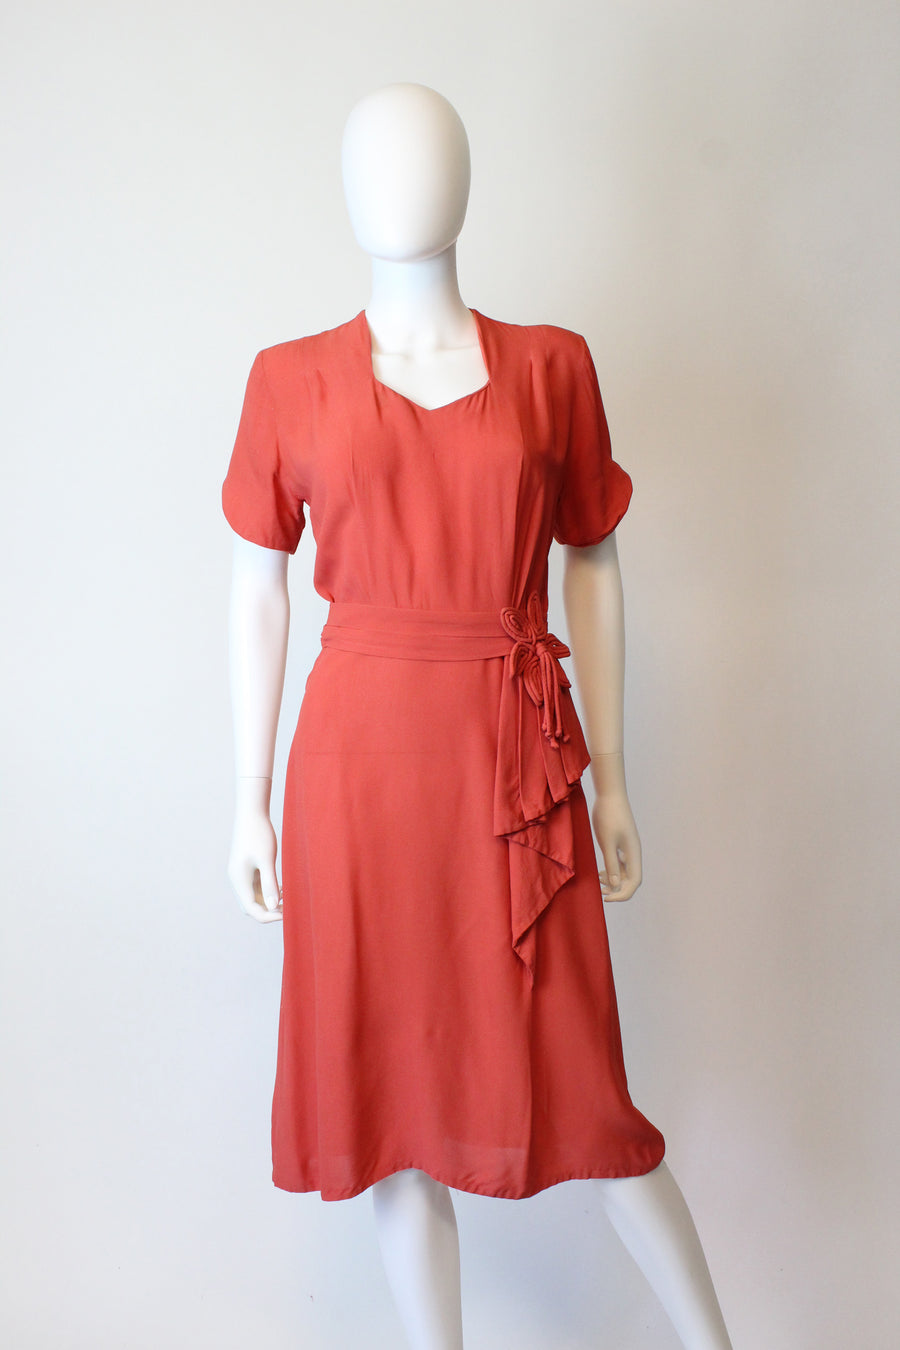 1940s coral rayon dress small | vintage tassel dress | new fall